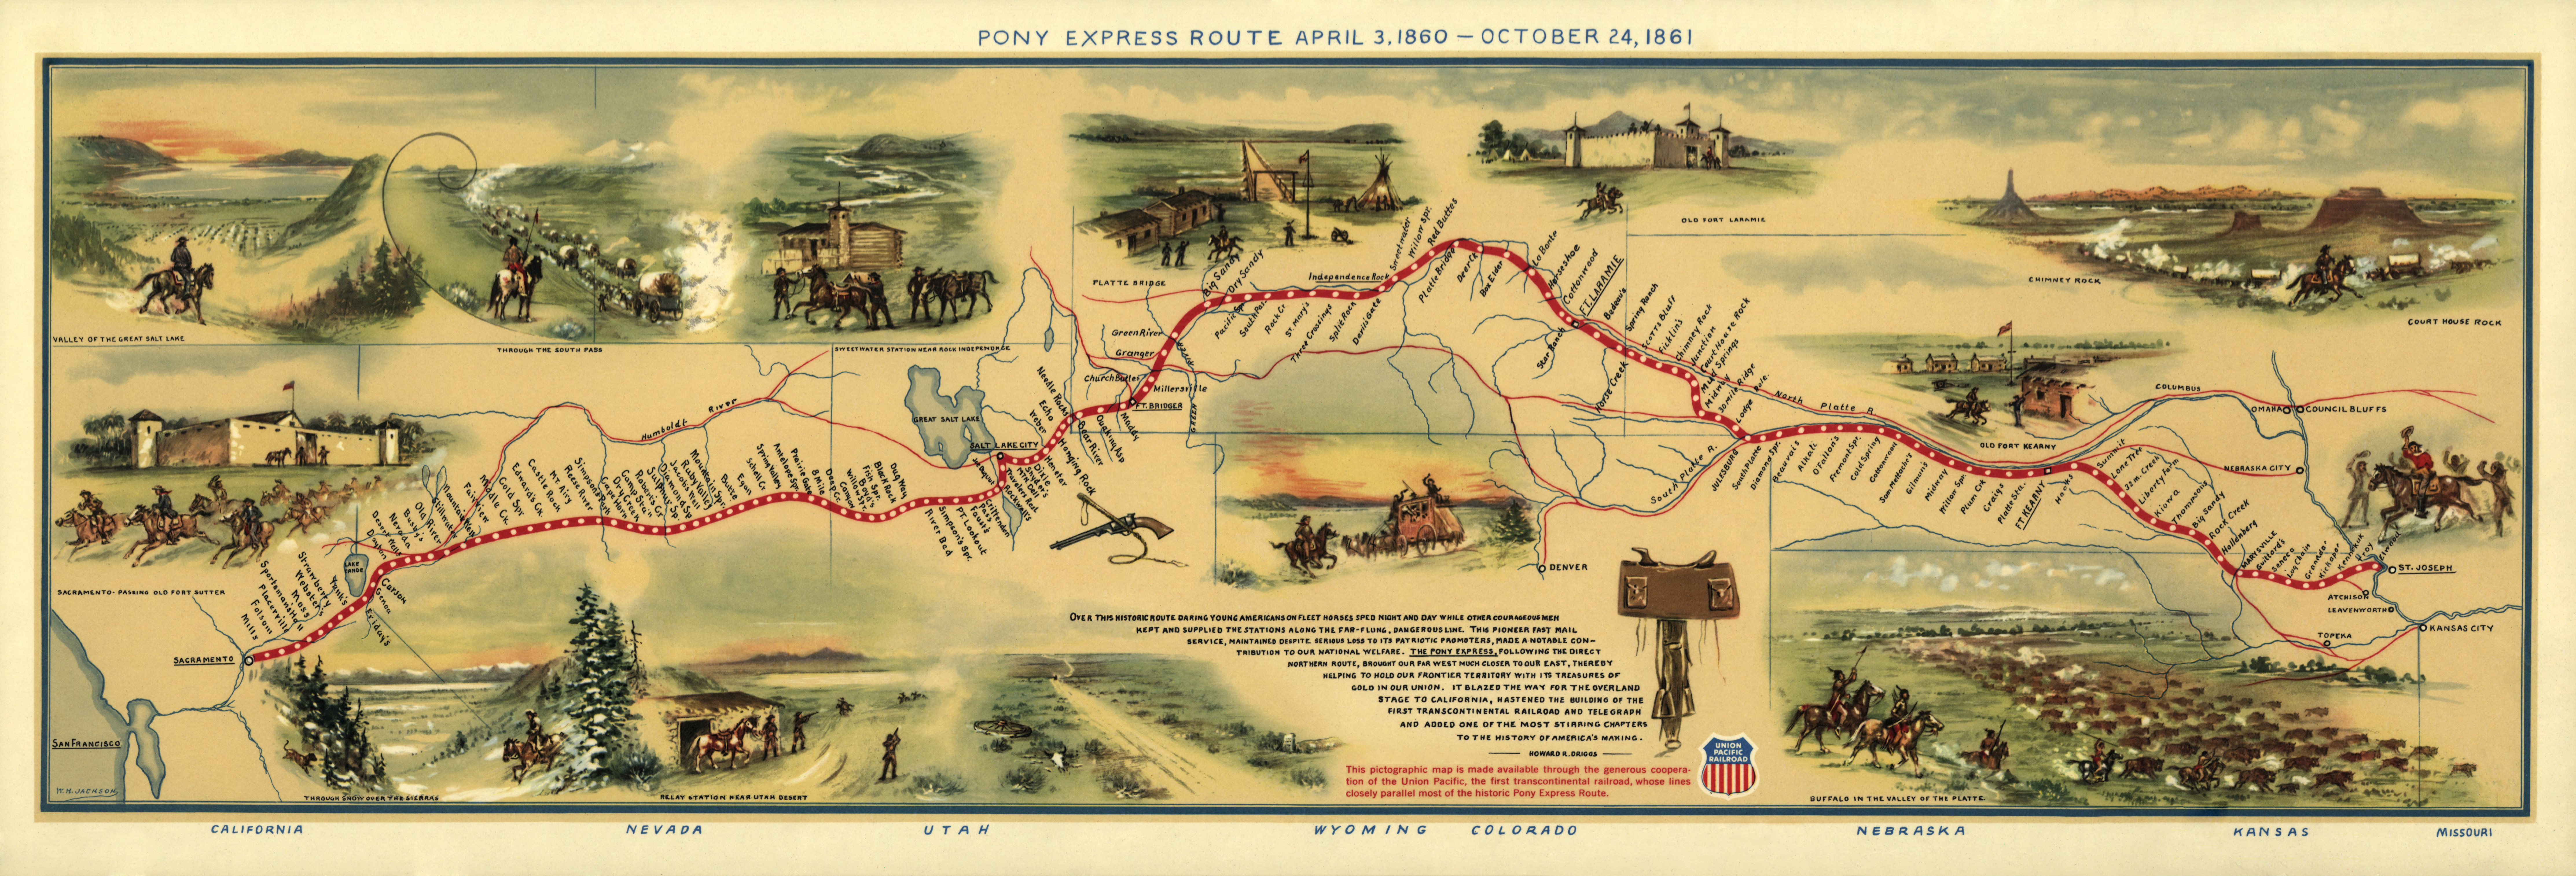 Pony Express route map by William Henry Jackson, likely from The Pony Express Goes Through (1935). This reproduction was issued by the Union Pacific Railroad Company to commemorate the 100th anniversary of the Pony Express on April 3, 1960.